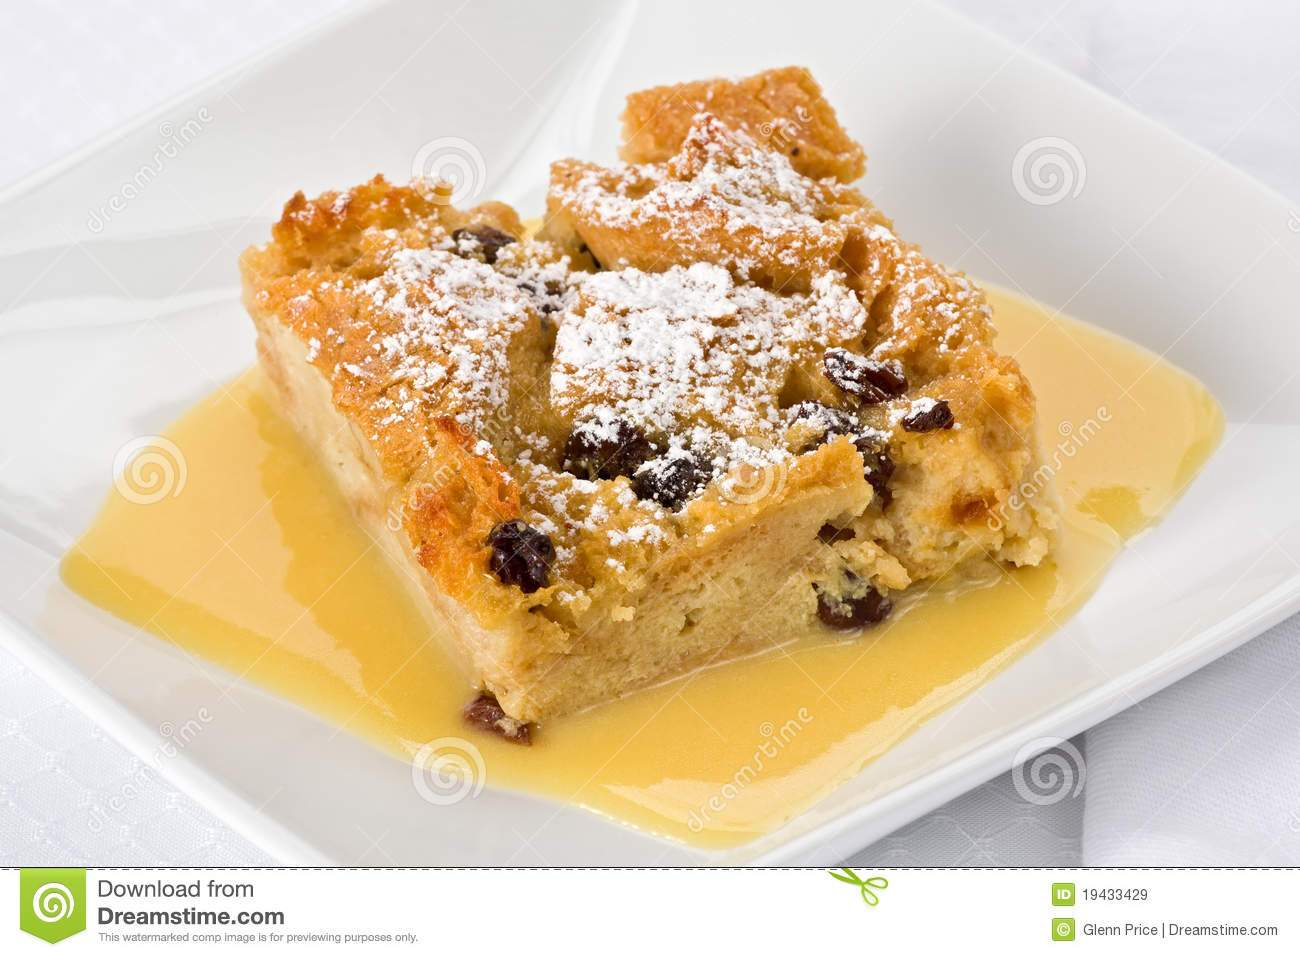 Bread pudding clipart picture transparent stock Bread pudding clipart 2 » Clipart Portal picture transparent stock